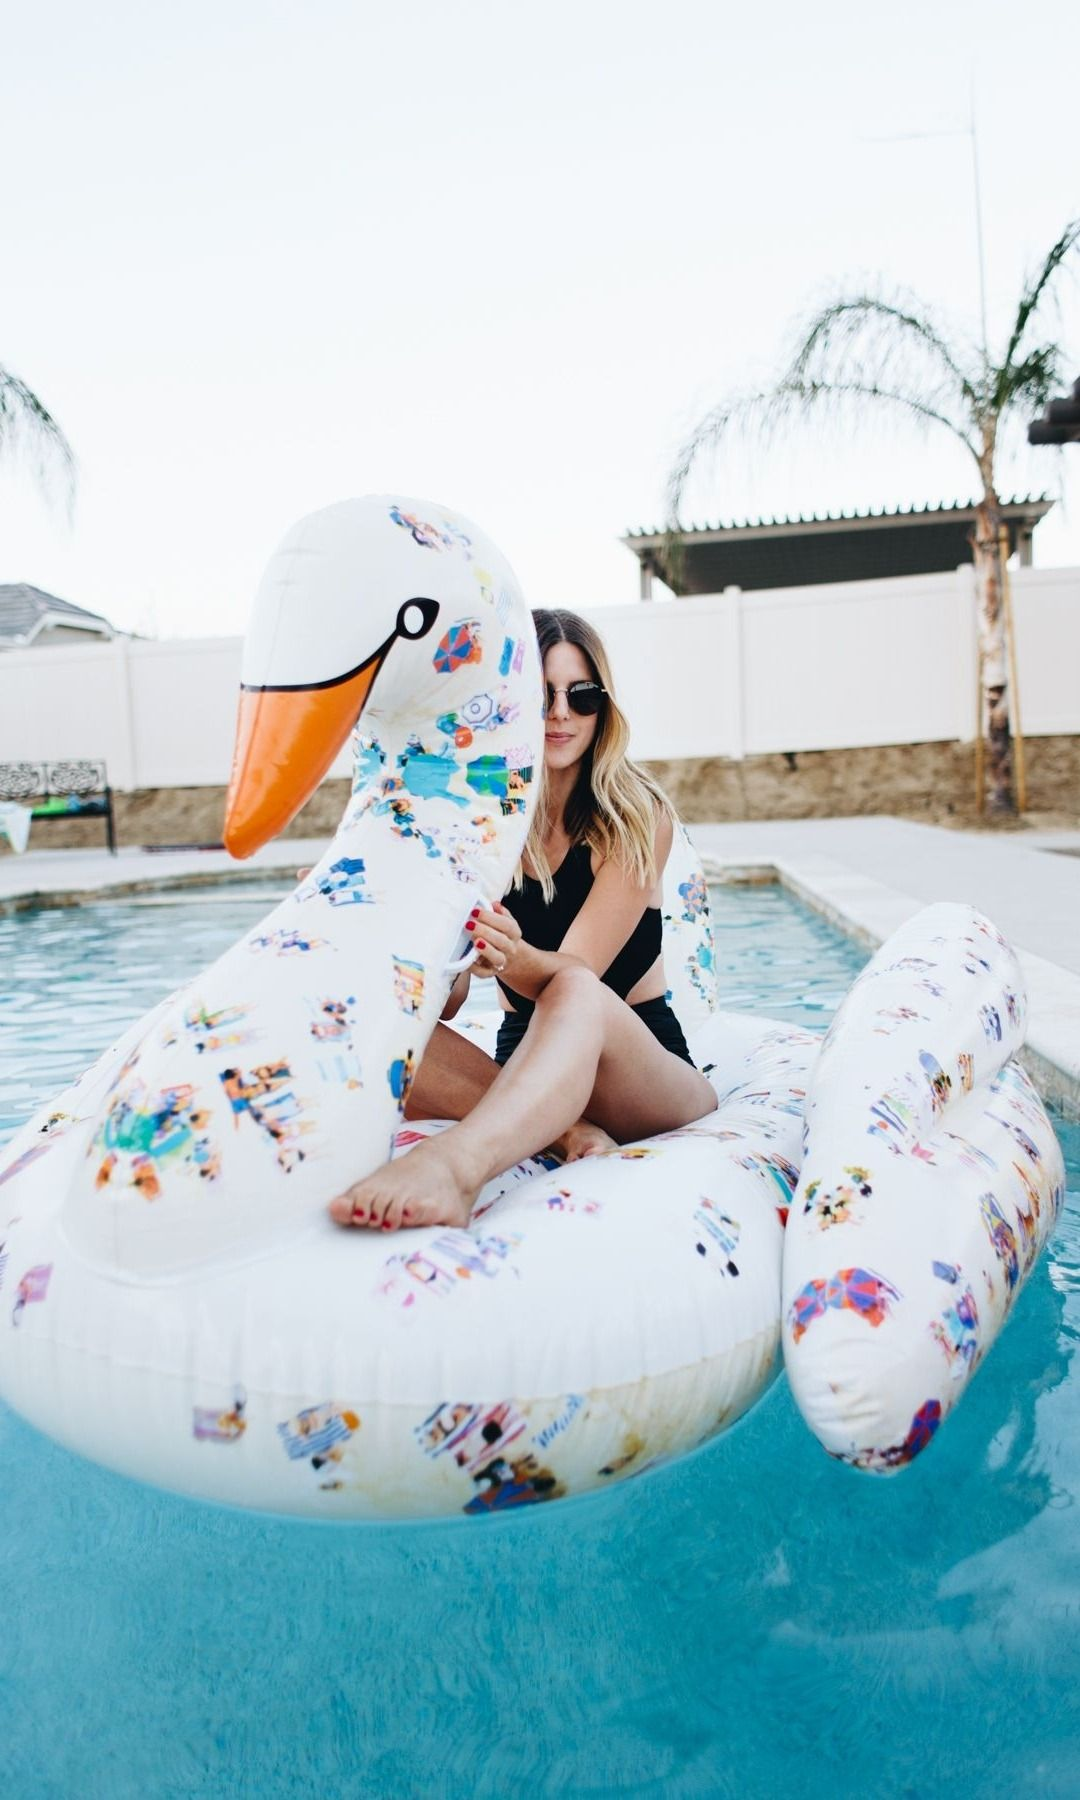 Every Fashion Girl Needs e These Pool Floats This Weekend